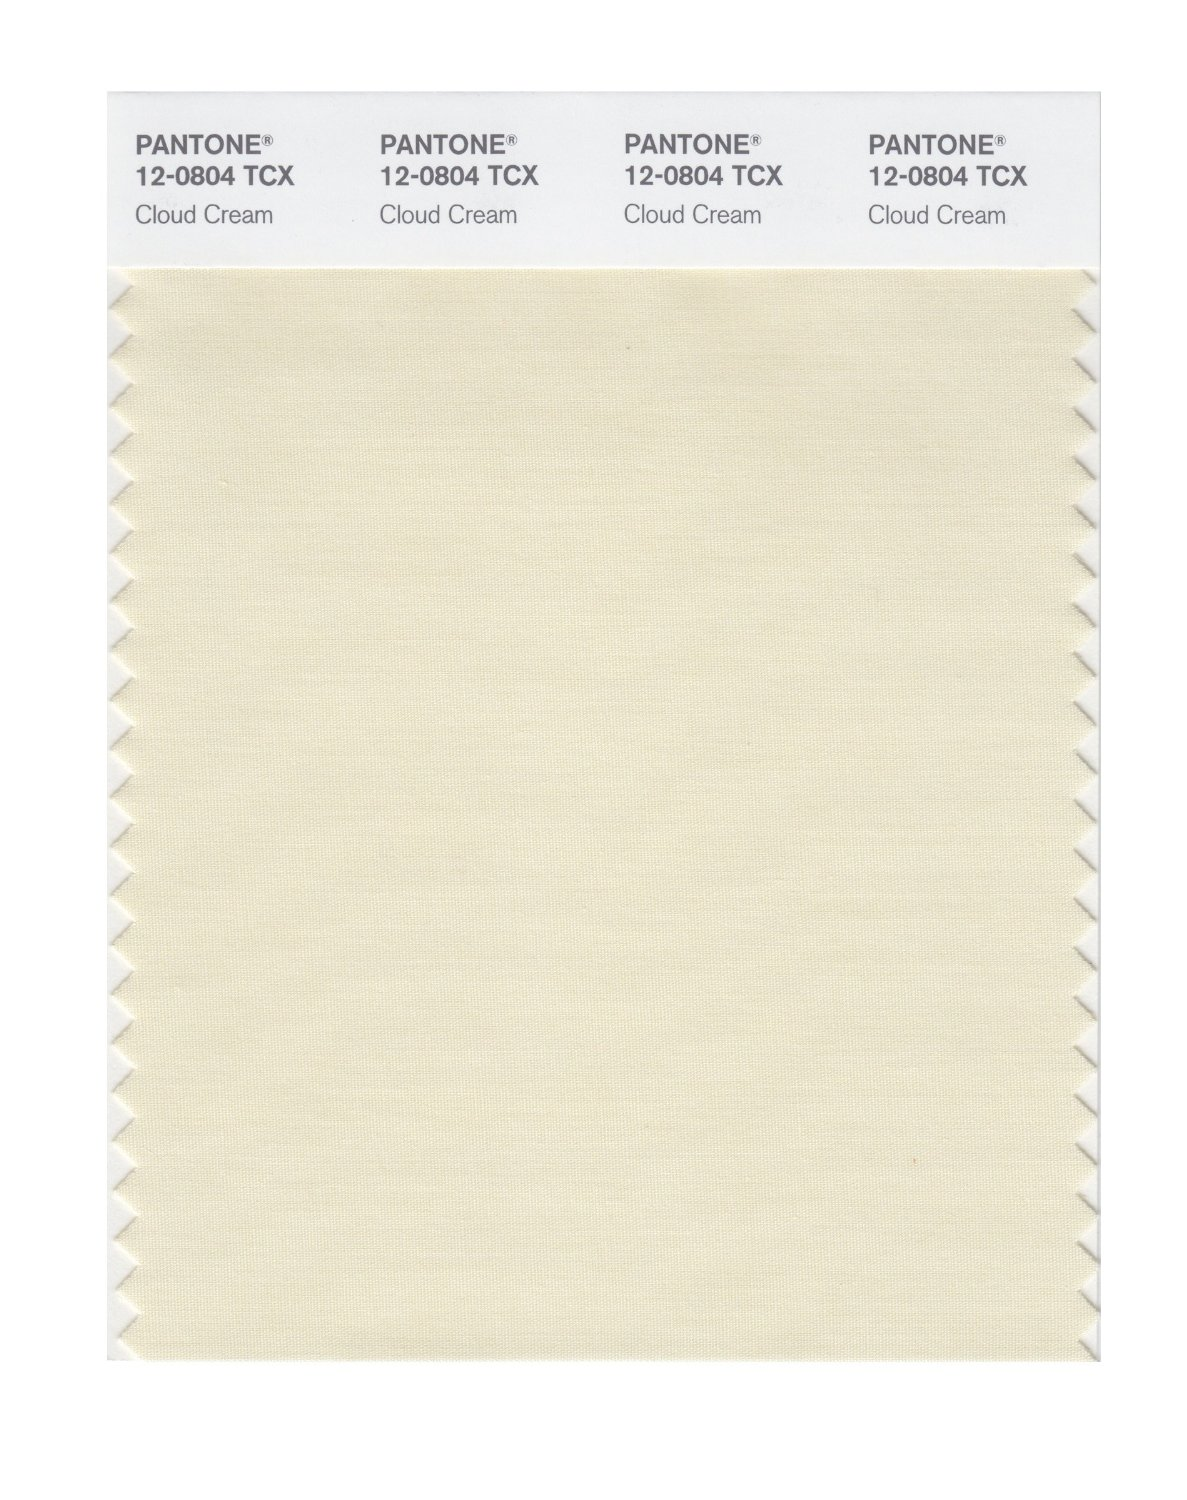 Pantone Smart Swatch 12-0804 Cloud Cream